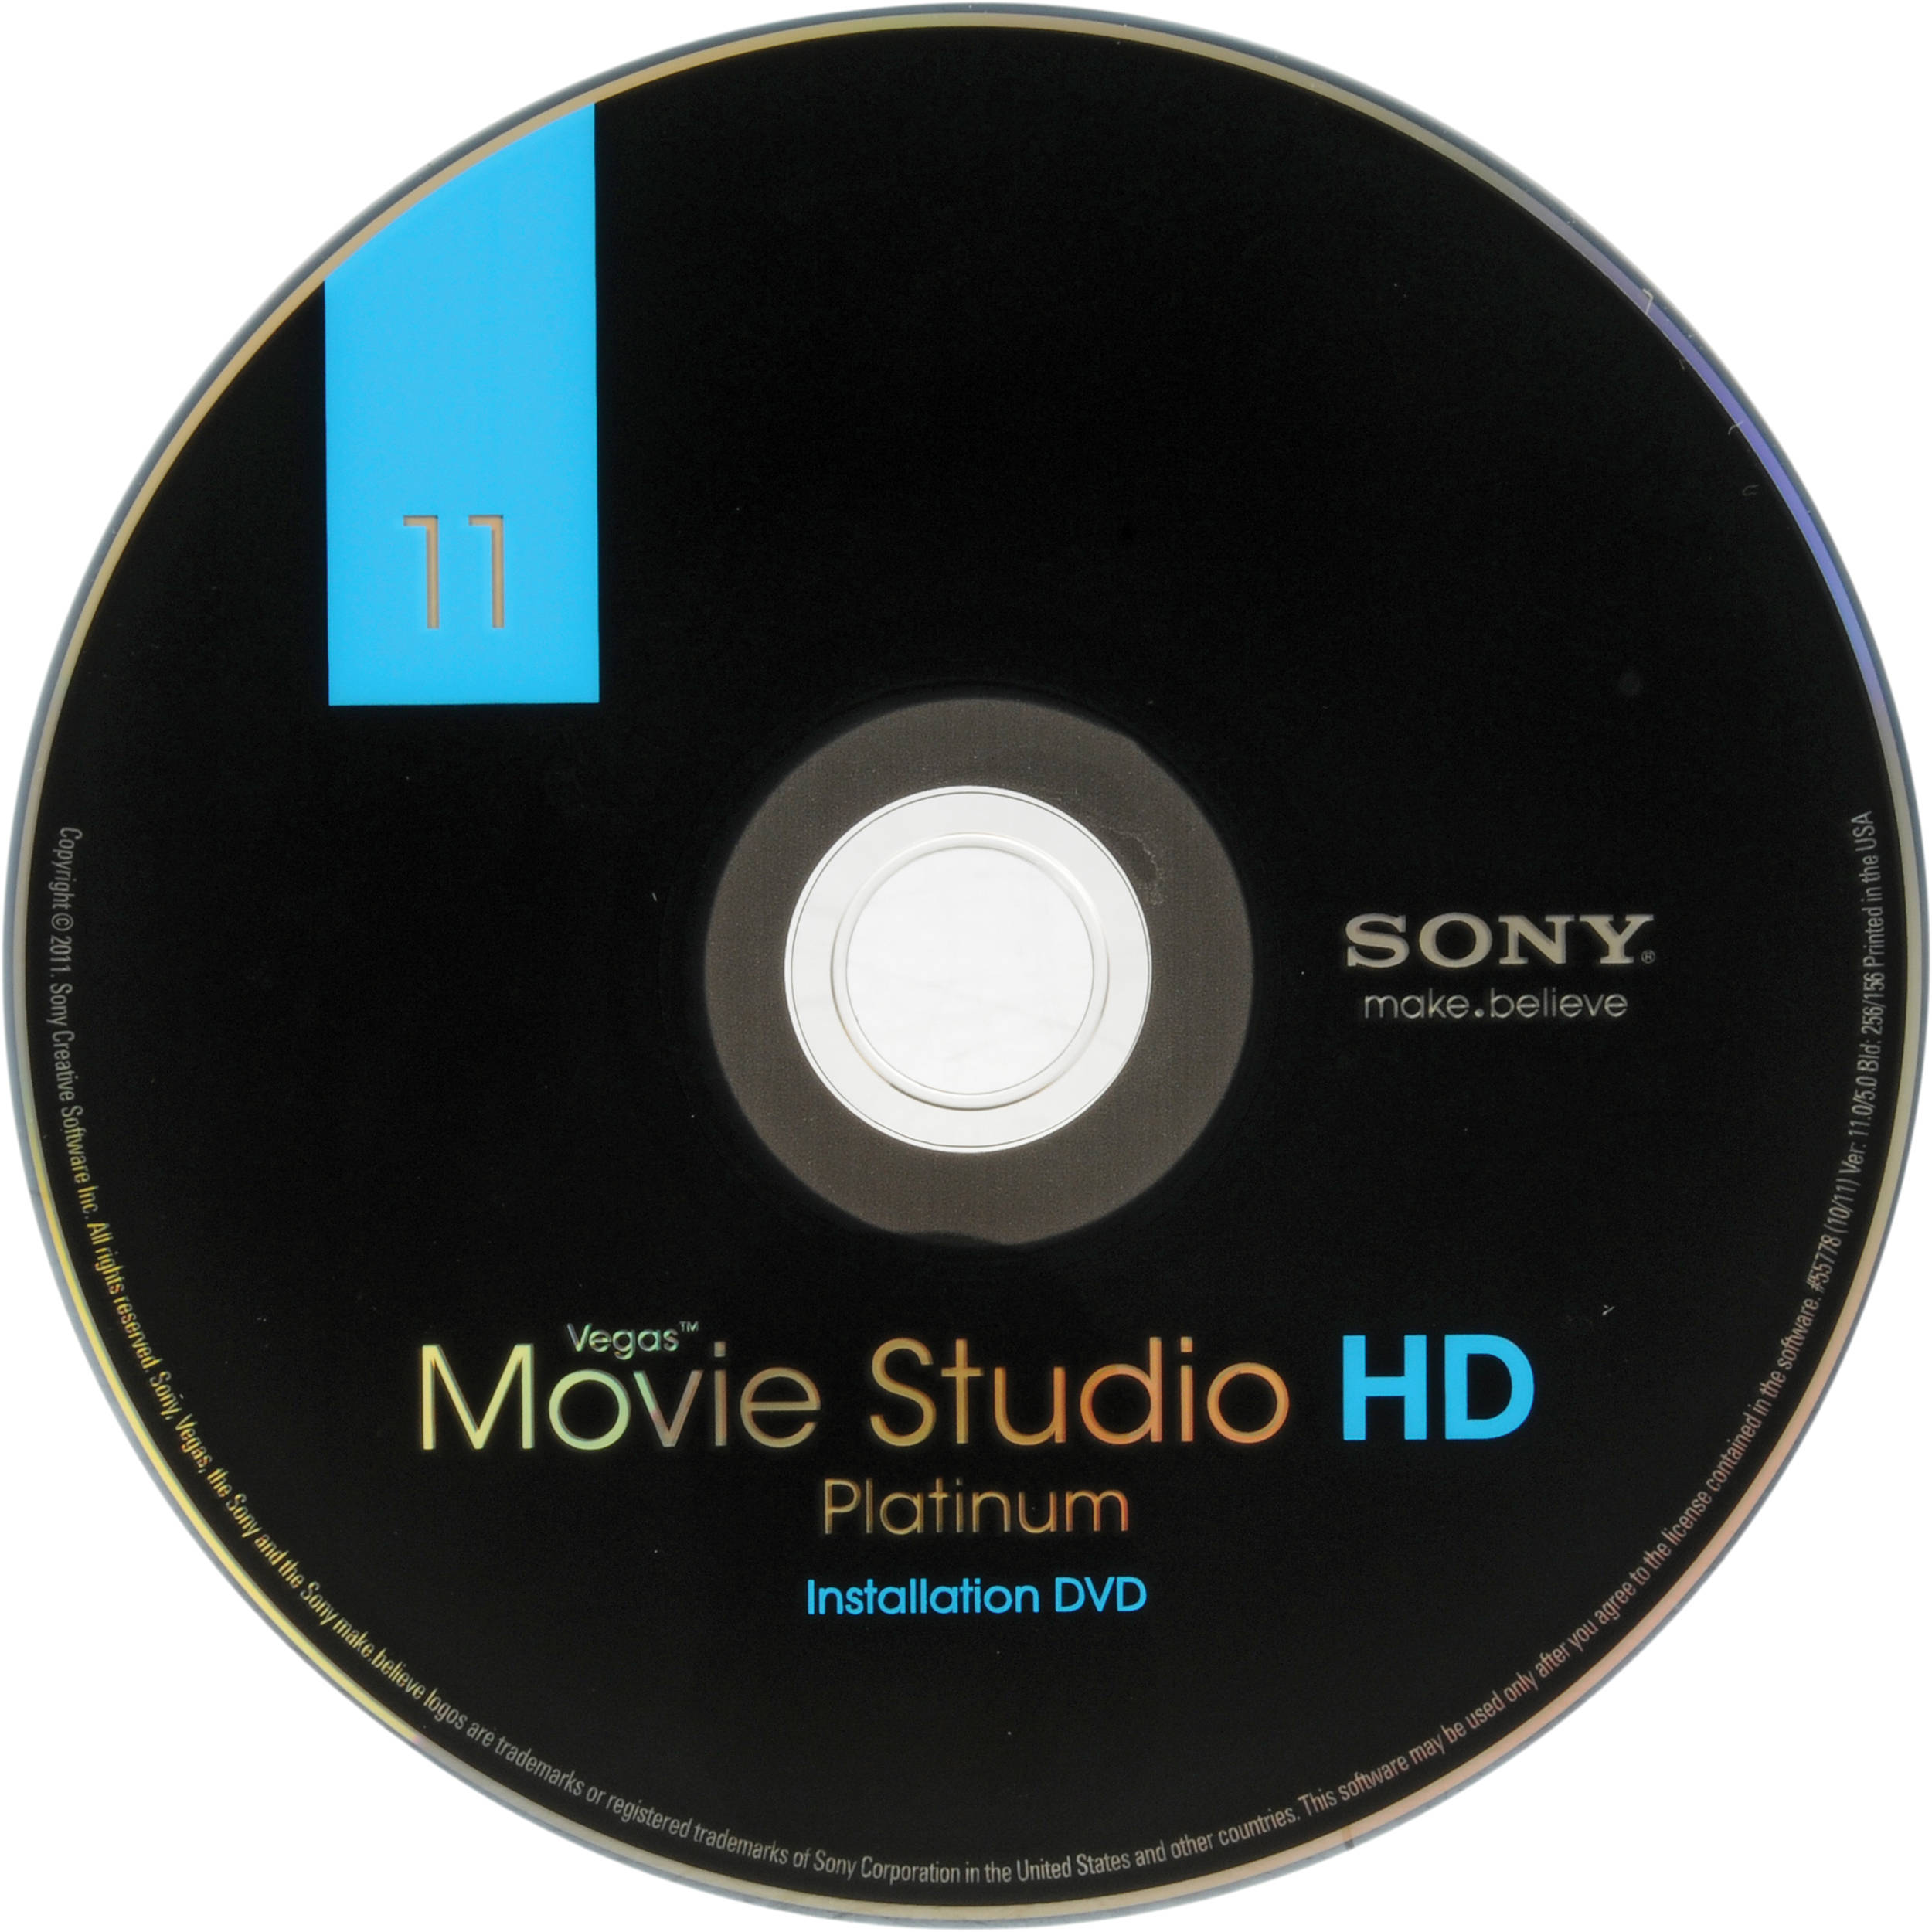 vegas movie studio hd platinum 11 system requirements